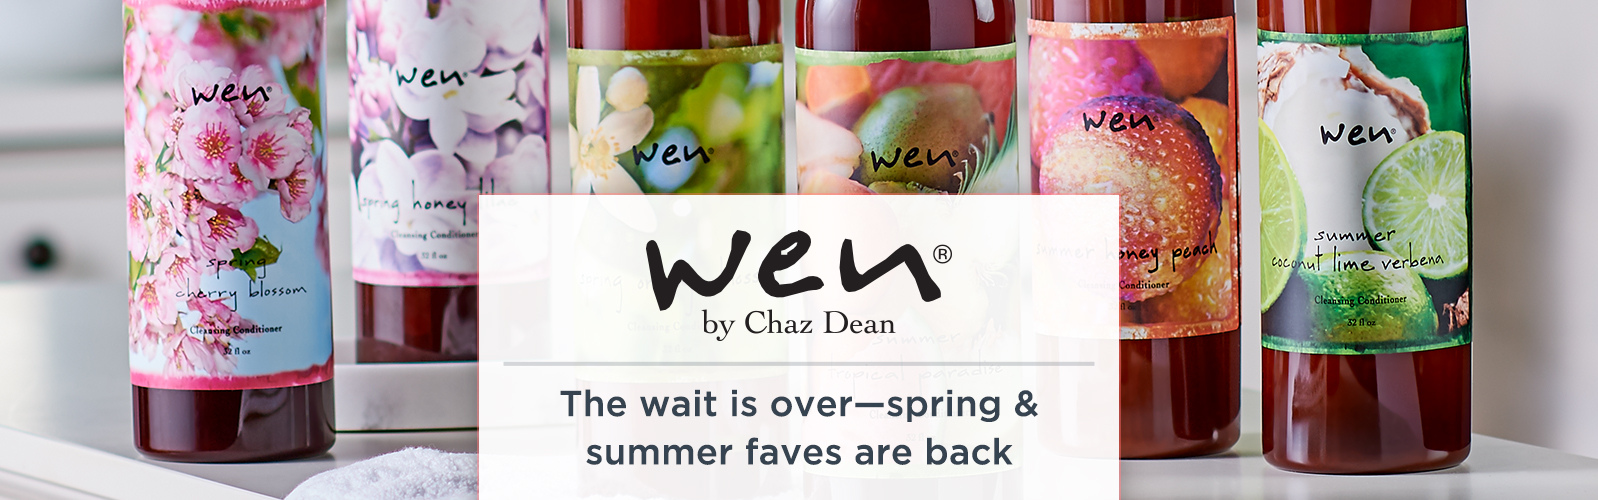 WEN by Chaz Dean. The wait is over—spring & summer faves are back.